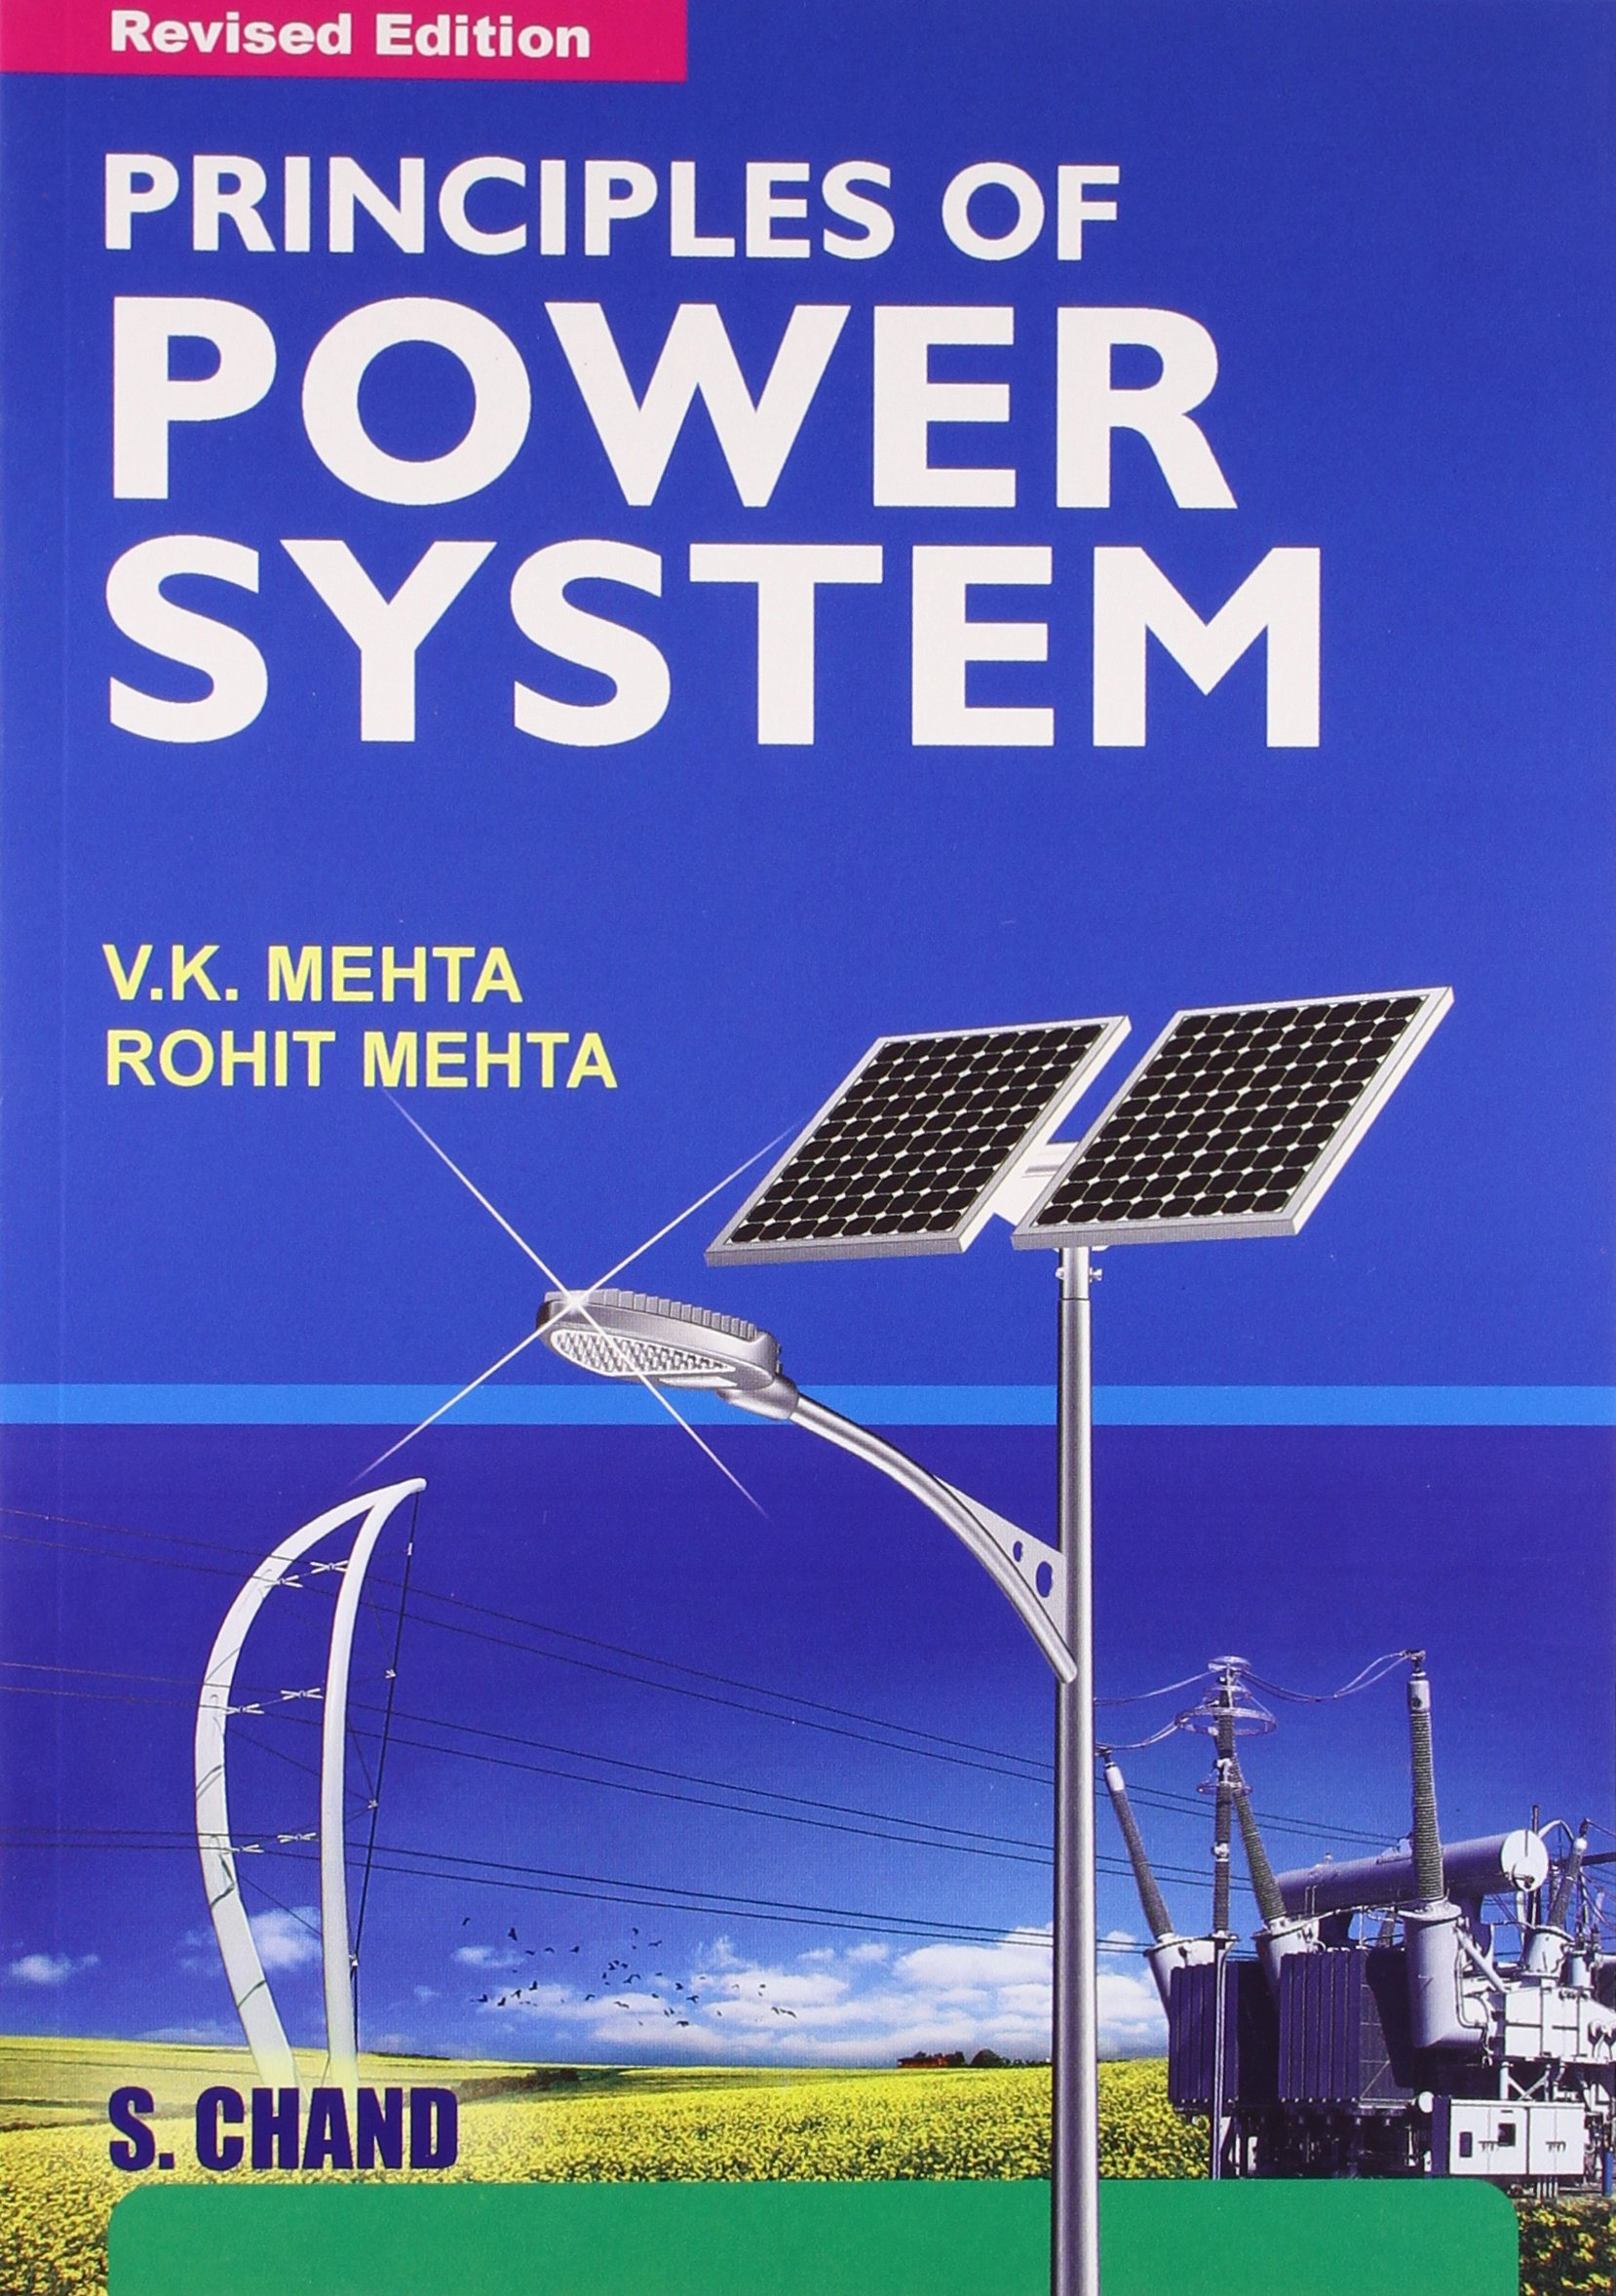 Buy Principles of Power System Book Online at Low Prices in India